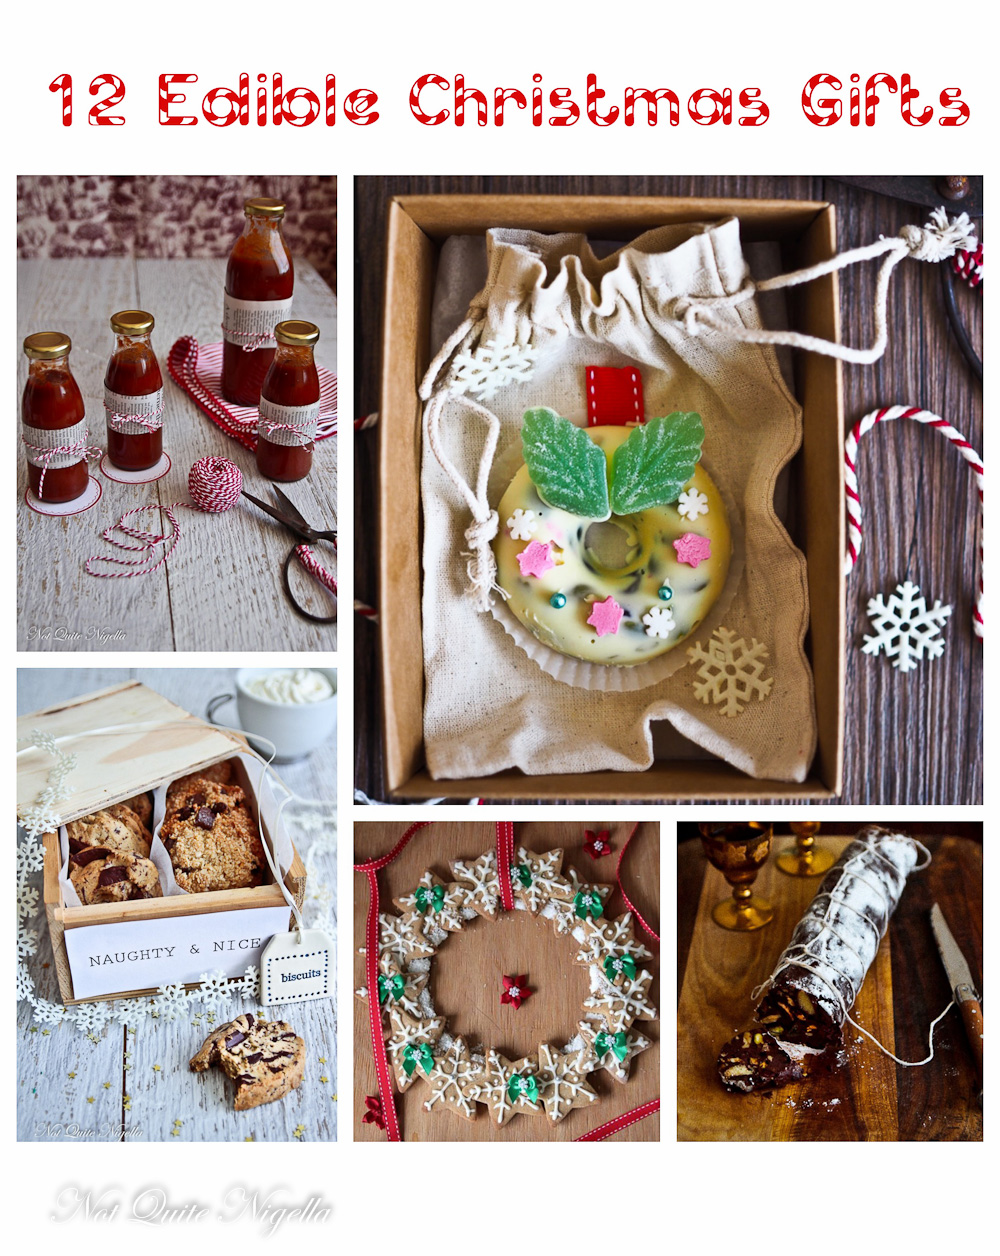 12 Inspired Edible Christmas Ideas Rocky Road Wreaths Not Quite Nigella